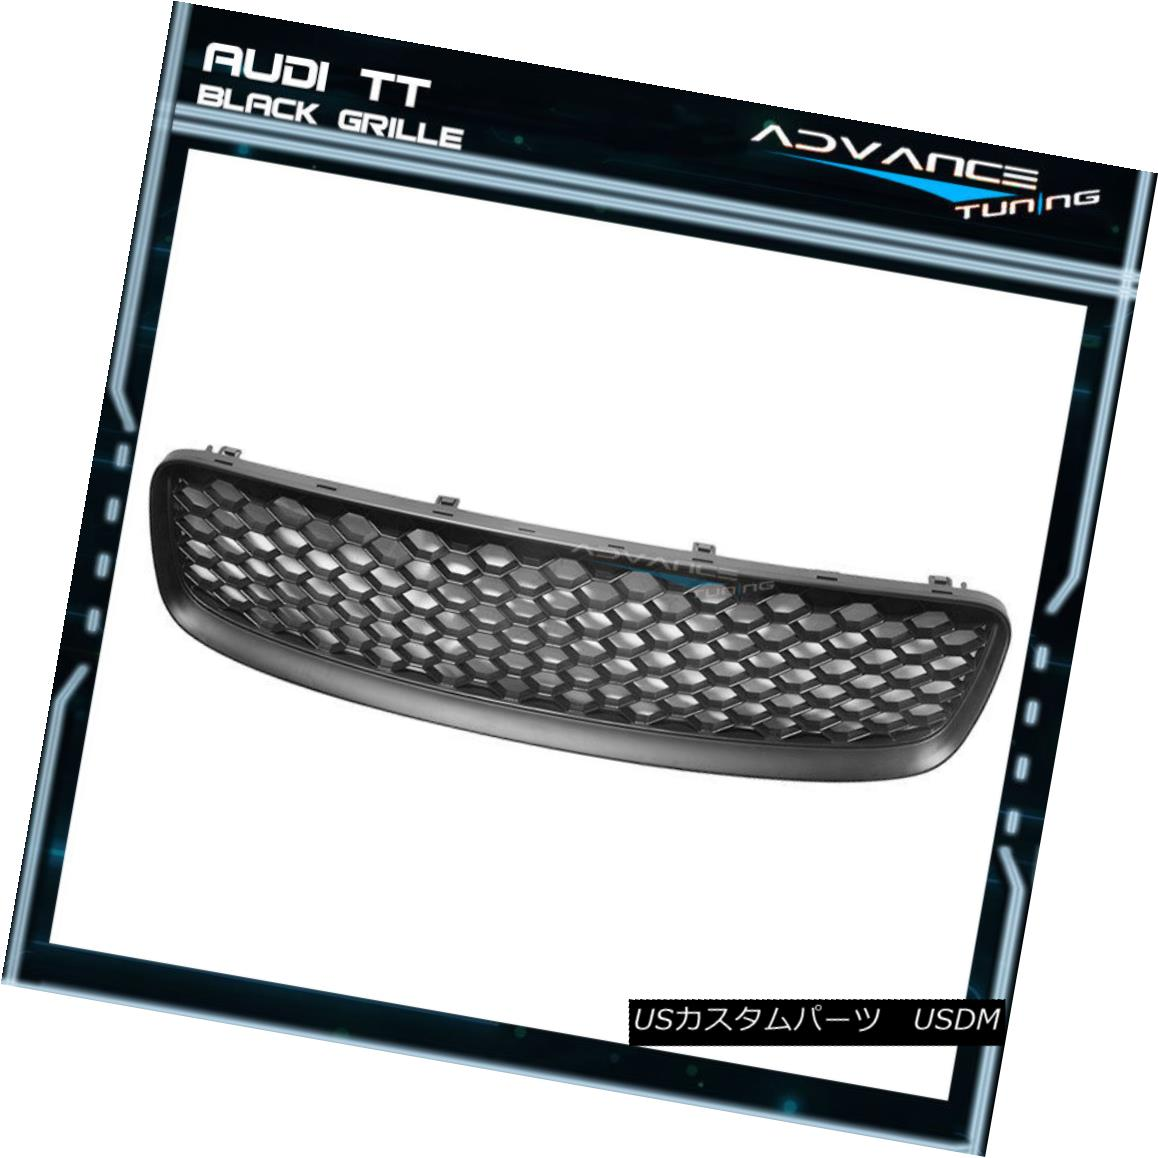 グリル For 99-06 Audi TT Black Front Upper Mesh Hood Grille New 99-06 Audi TT BlackフロントアッパーメッシュフードグリルNew